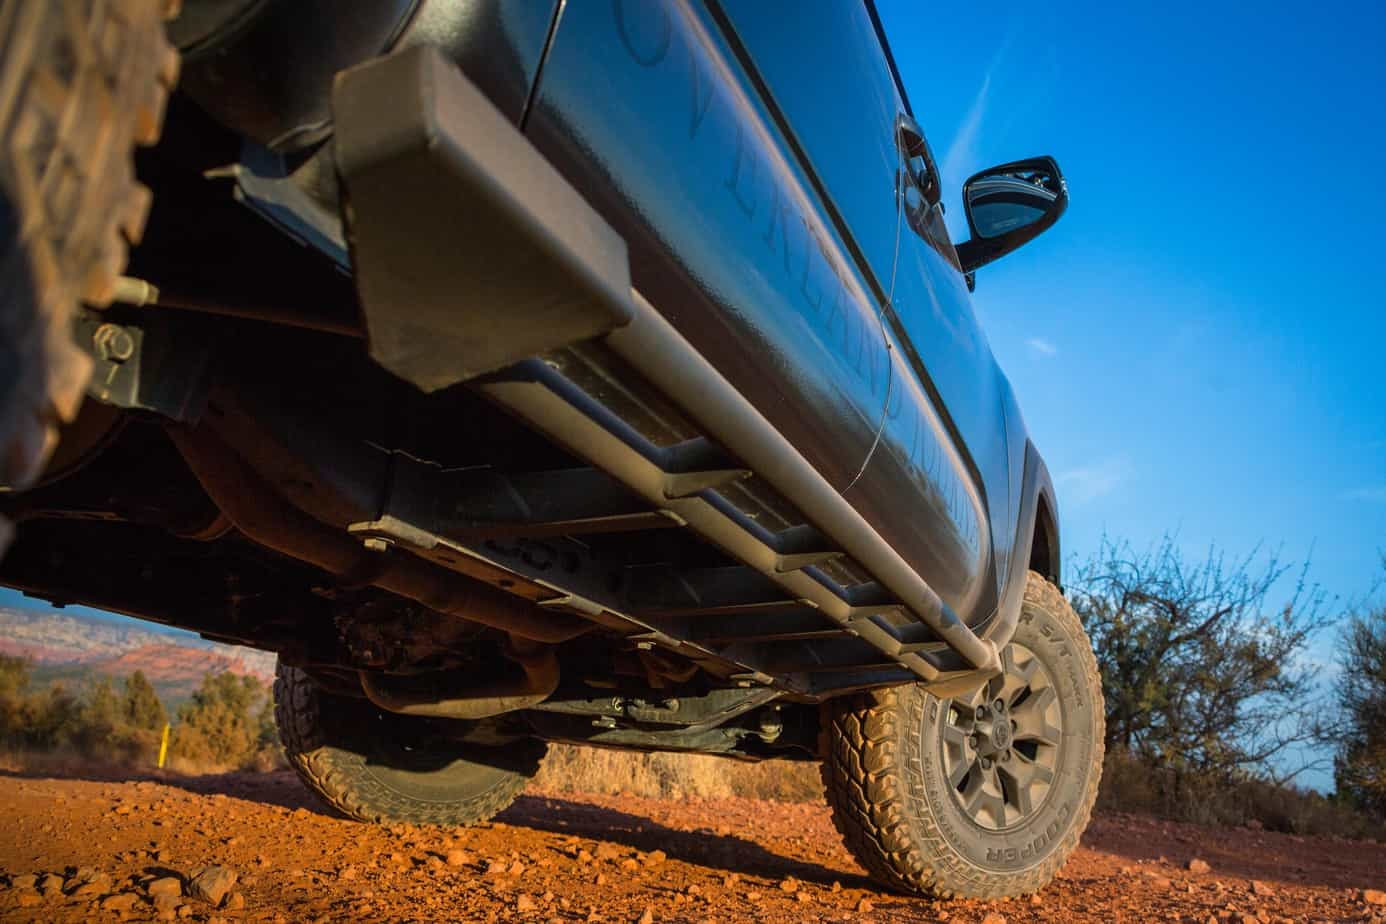 DECKED Featured in Overland Journal's Ultimate Tacoma Build